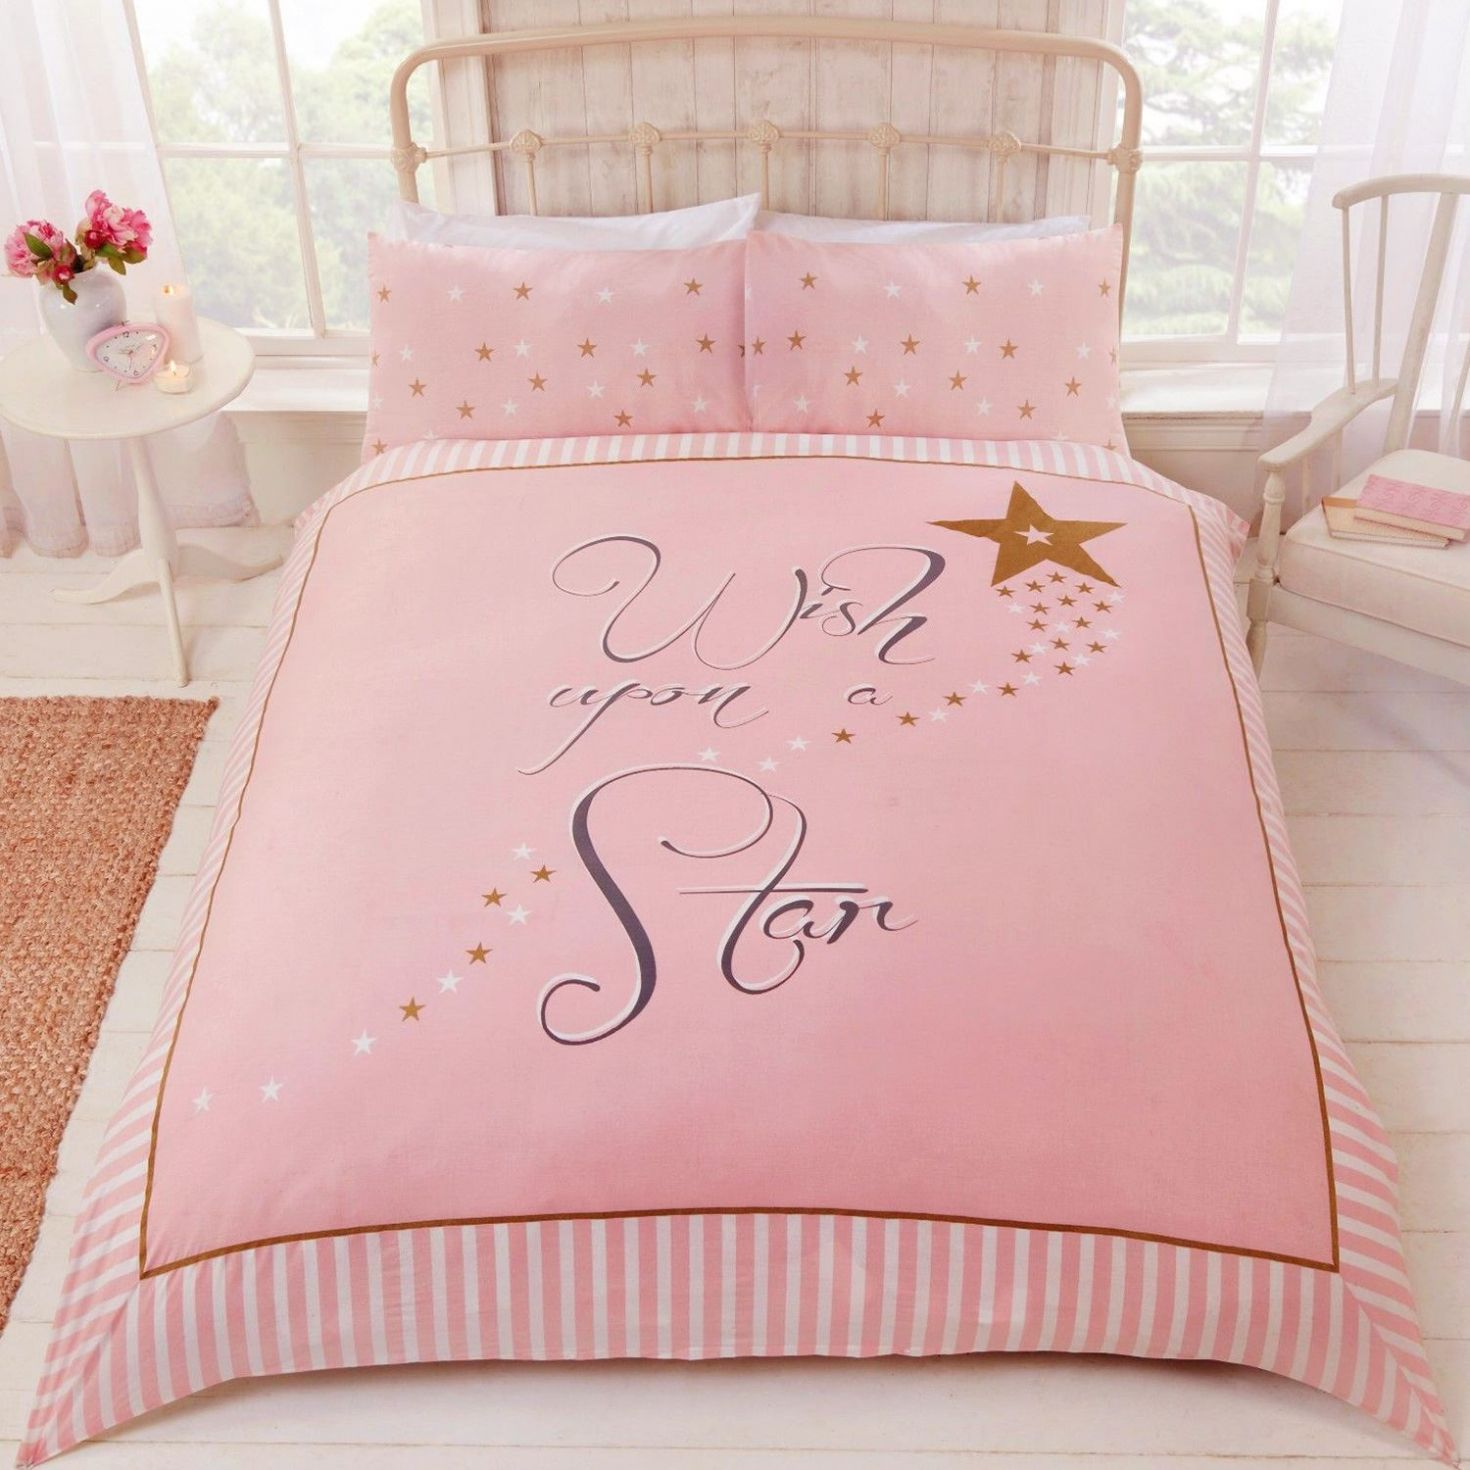 Brilliant Pink And Gold Bedding Applied To Your Home Decor Wish Upon A Star Duvet Cover Set Pink Go Pink And Gold Bedding Duvet Cover Sets Double Duvet Covers